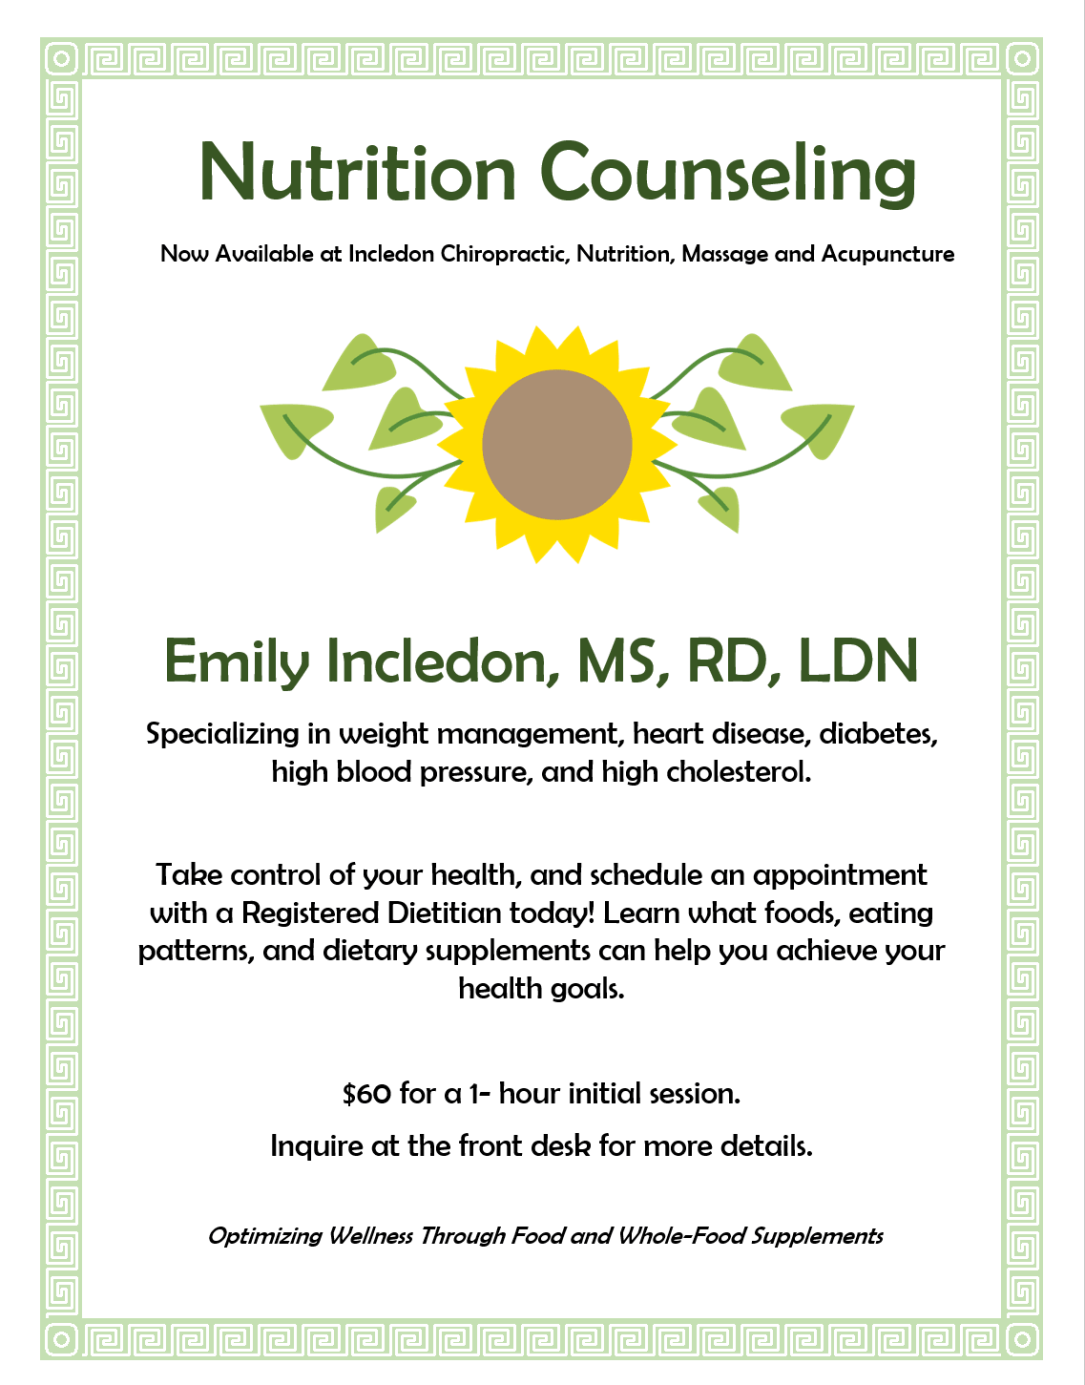 nutrition-counseling1.png